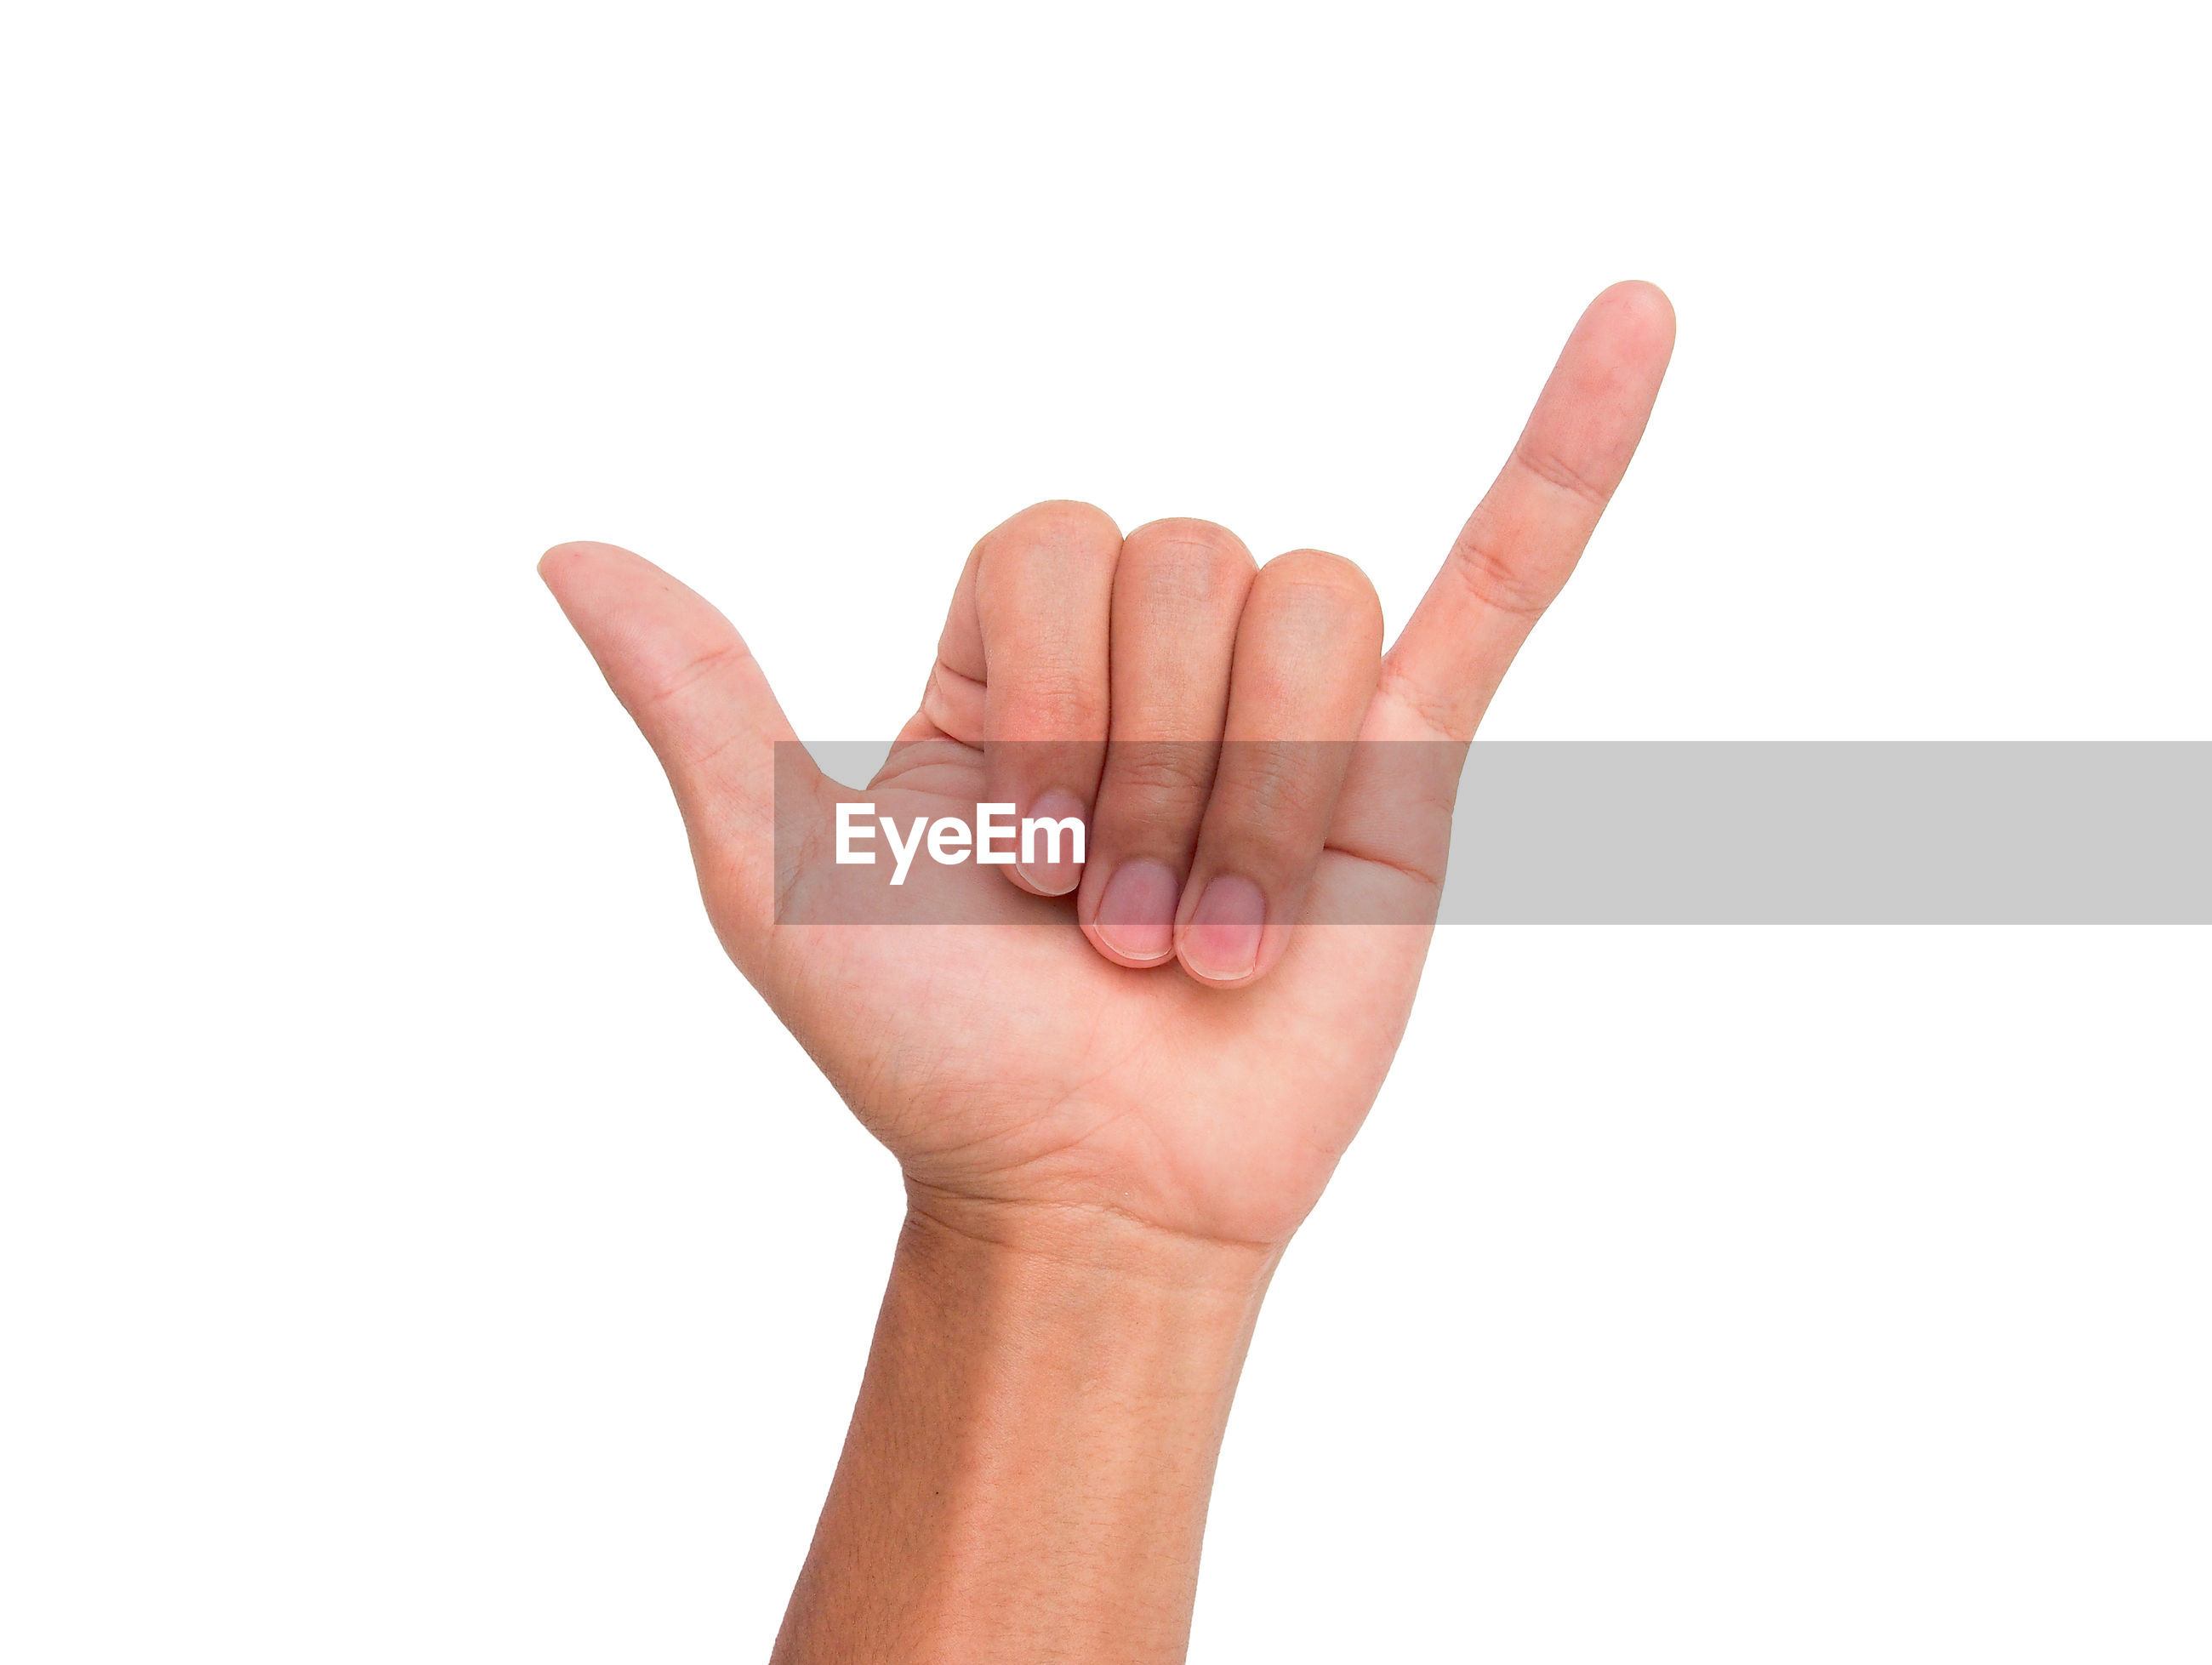 Cropped image of person showing shaka sign against white background